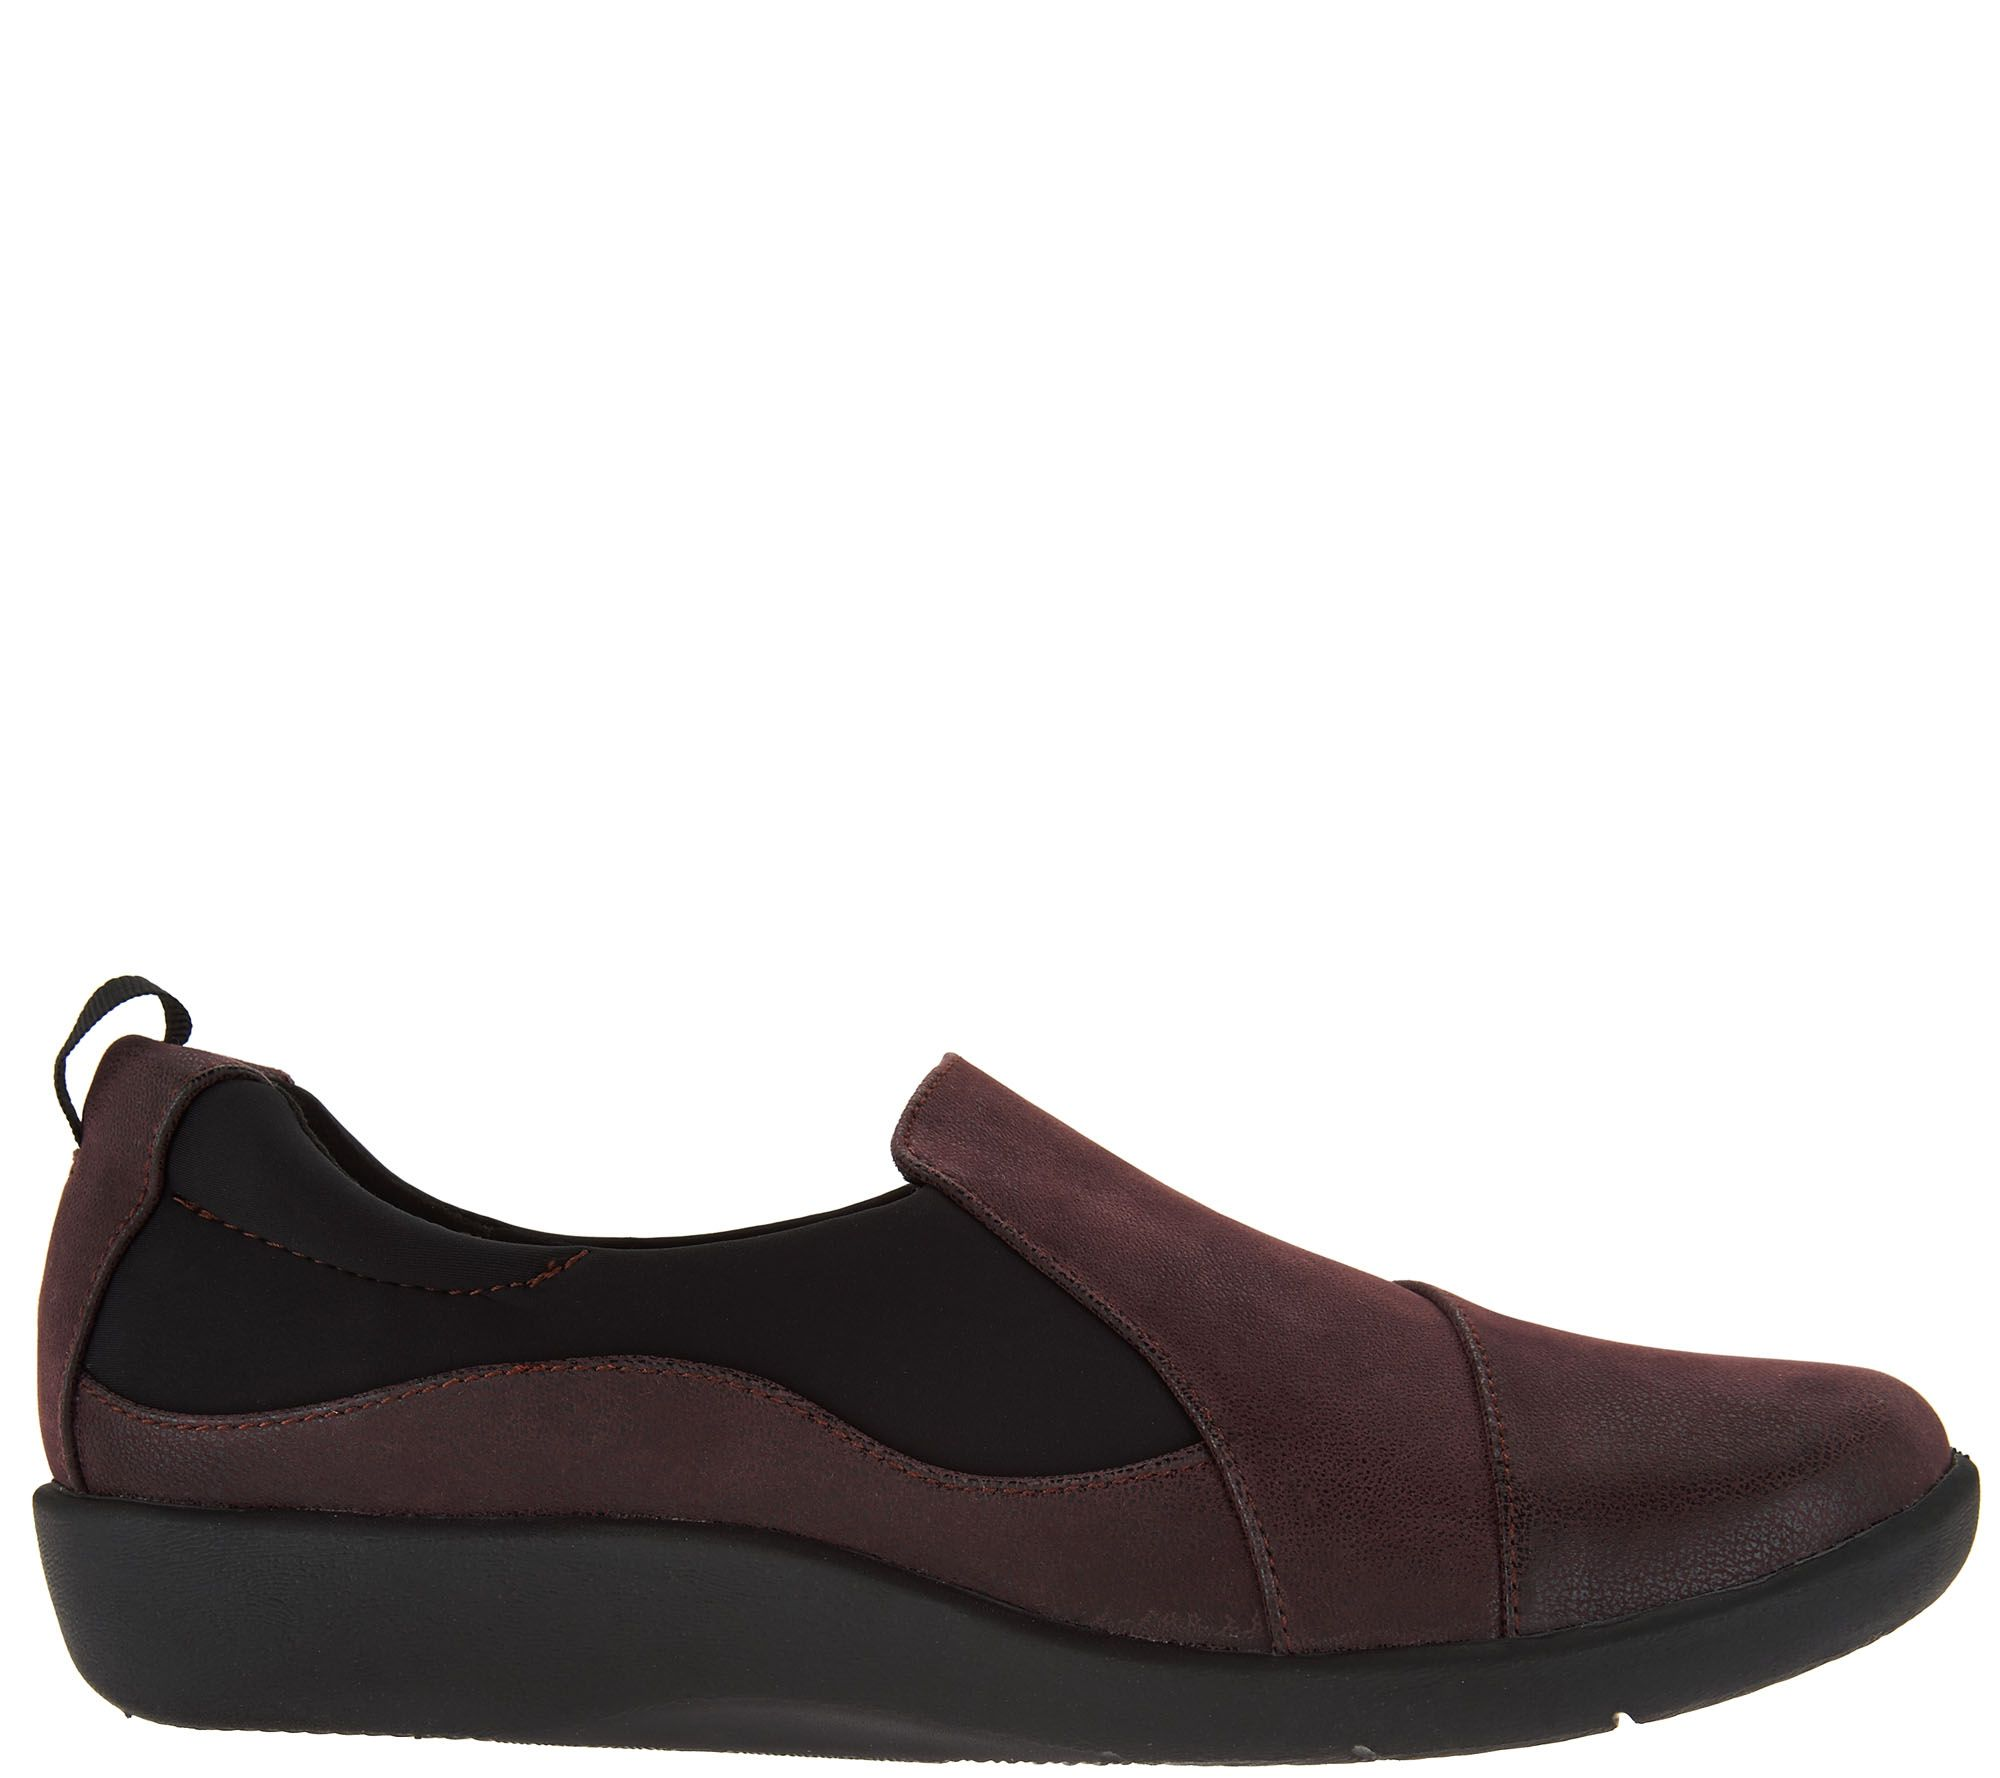 d9808a5eb71c CLOUDSTEPPERS by Clarks Slip-on Shoes - Sillian Paz - Page 1 — QVC.com